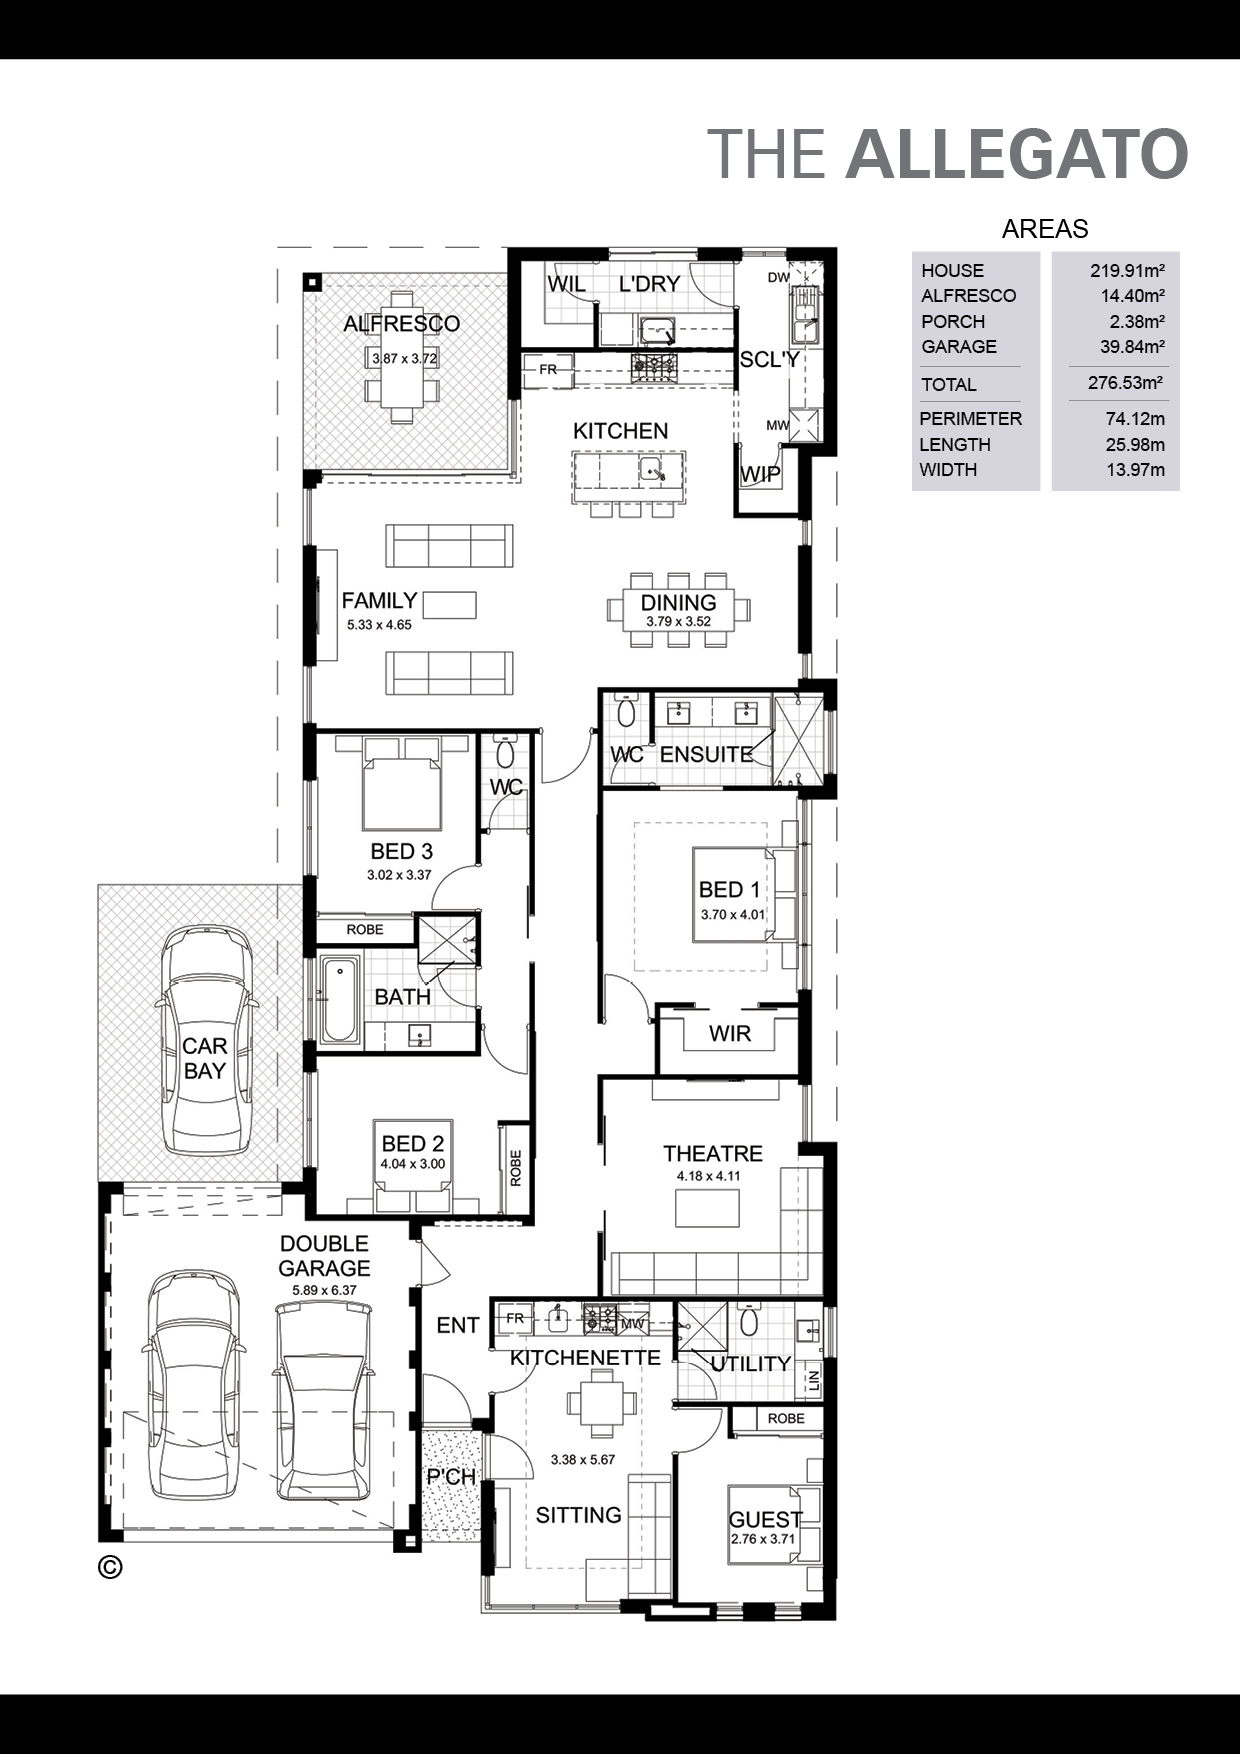 The Allegato Floorplan